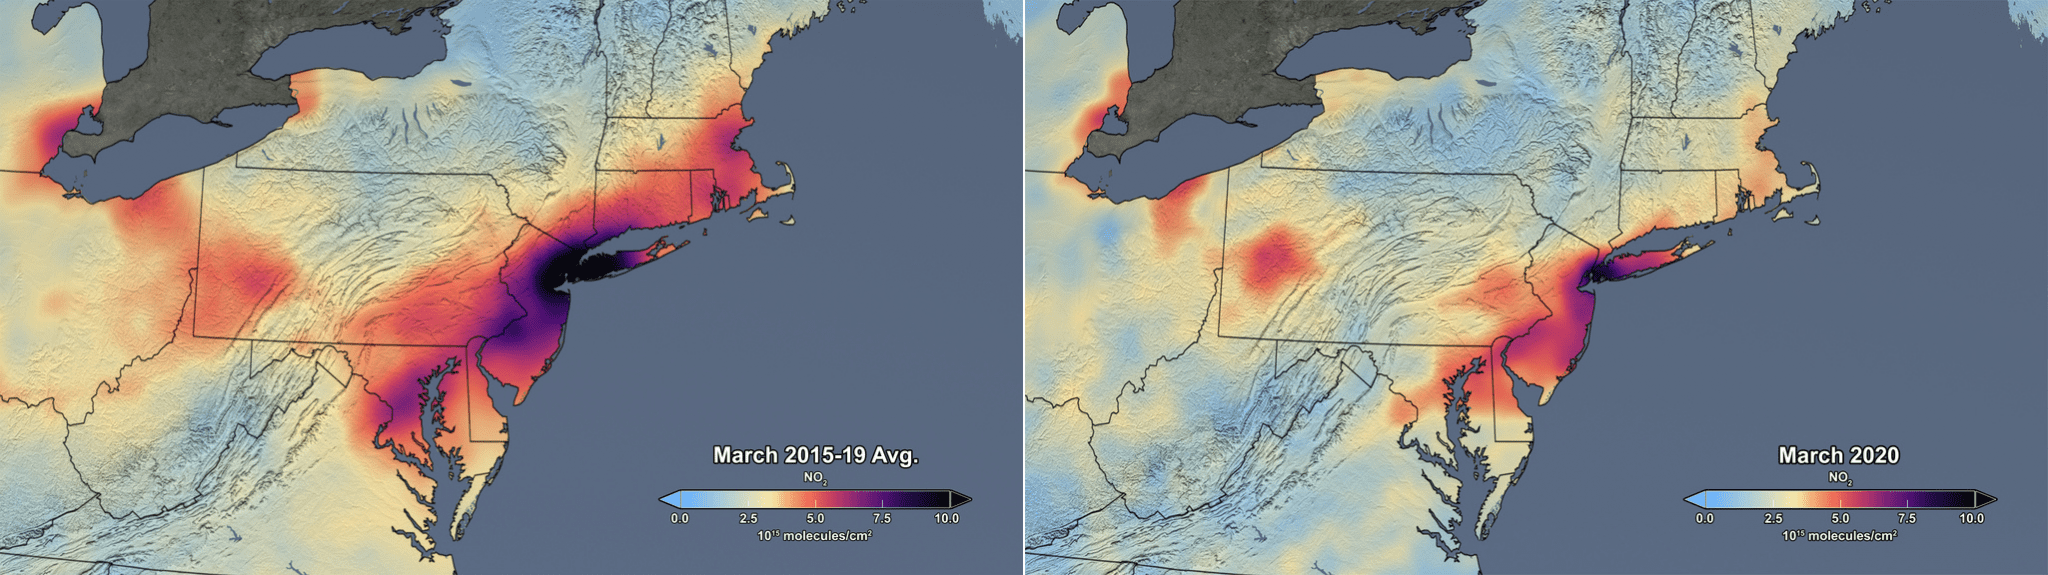 NASA heat maps of tropospheric NO2 column: Average for March 2015-2019 and March 2020